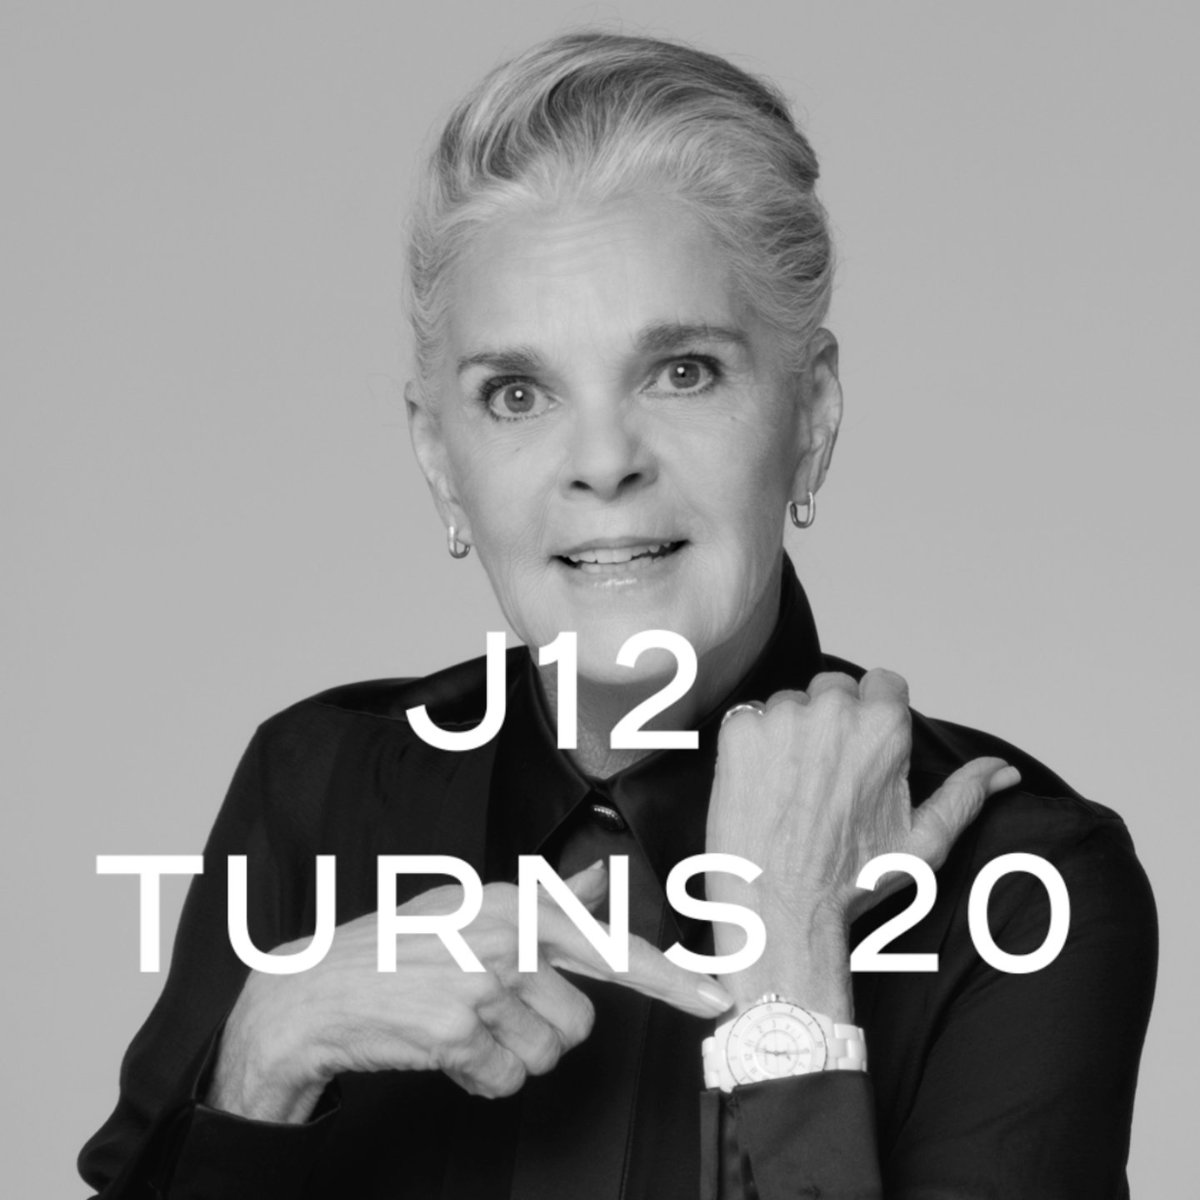 J12 TURNS 20 The J12 muses answer questions in a series of special 20th anniversary interviews. Discover more on https://t.co/oygHeOFVng  #J12Turns20 #CHANELWatches #ItsAllAboutSeconds https://t.co/OWHAYCz1fs